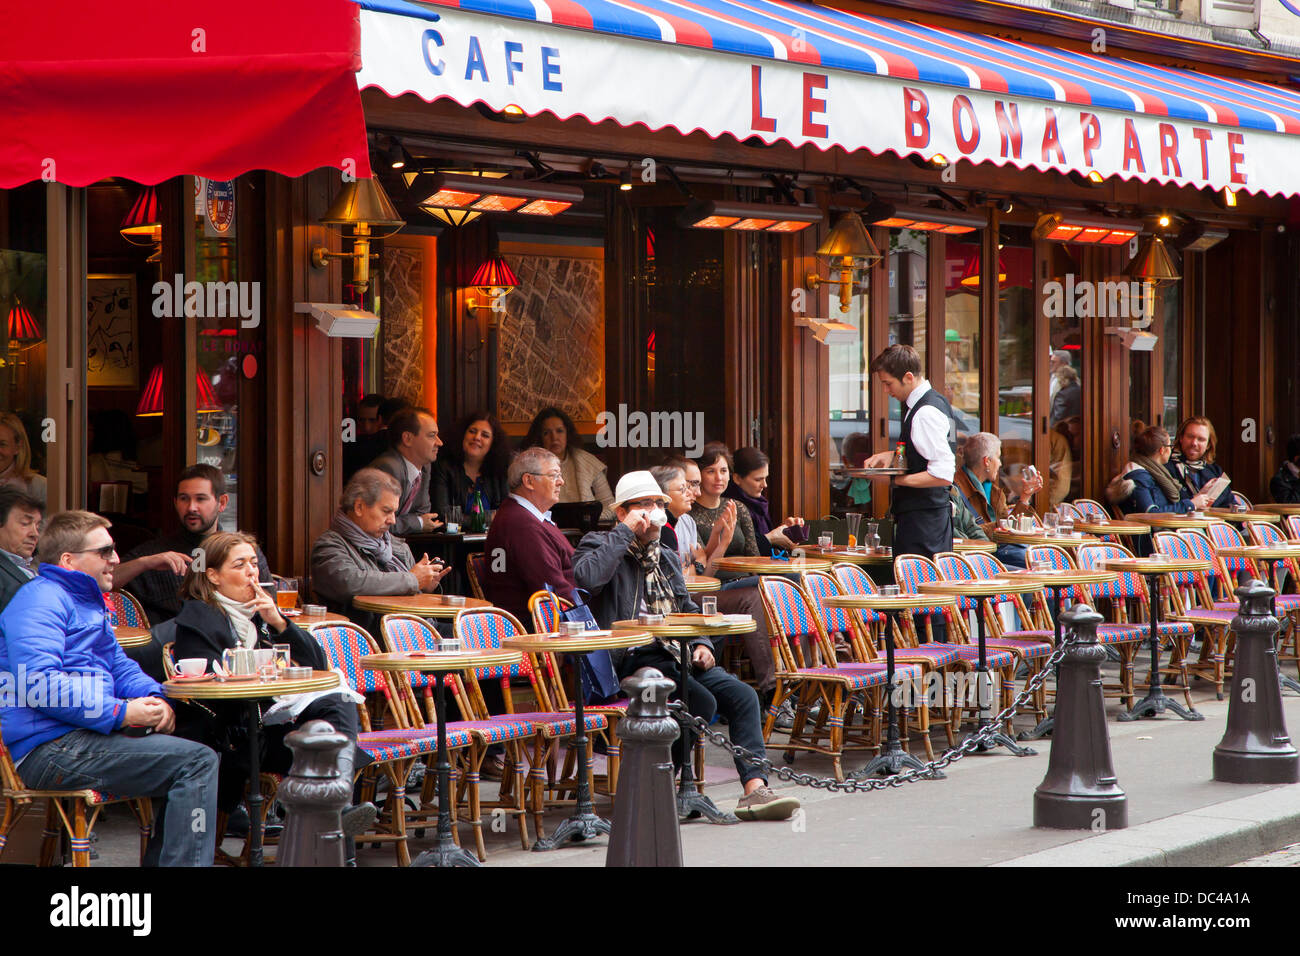 Cafe Le Bonaparte In Saint Germain Des Pres Paris France